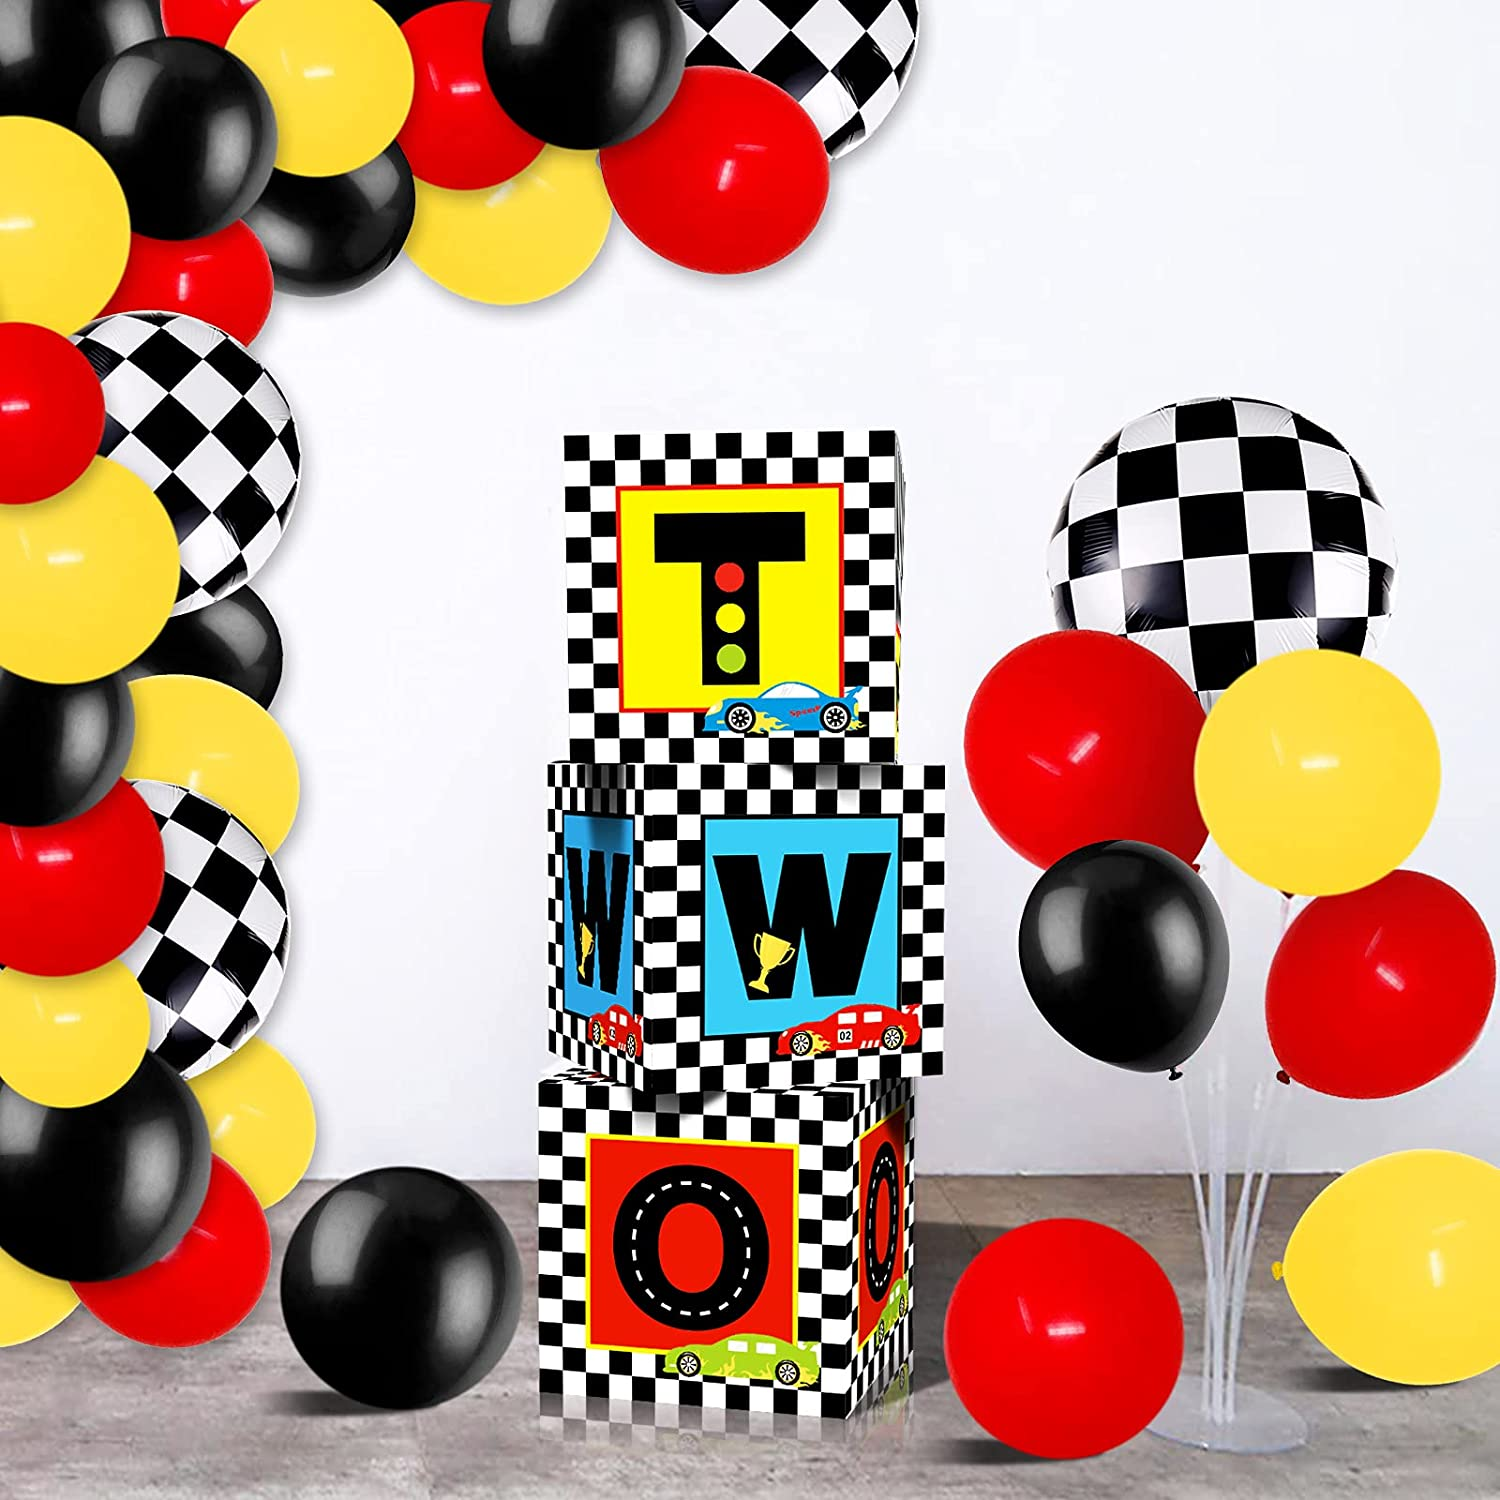 Race Car Birthday Balloon Boxes Decorations Including Racing Party Boxes Block, Red Yellow Black Latex Balloons for Two Fast 2nd Birthday Party Supplies Checkered Flags Backdrop Favor